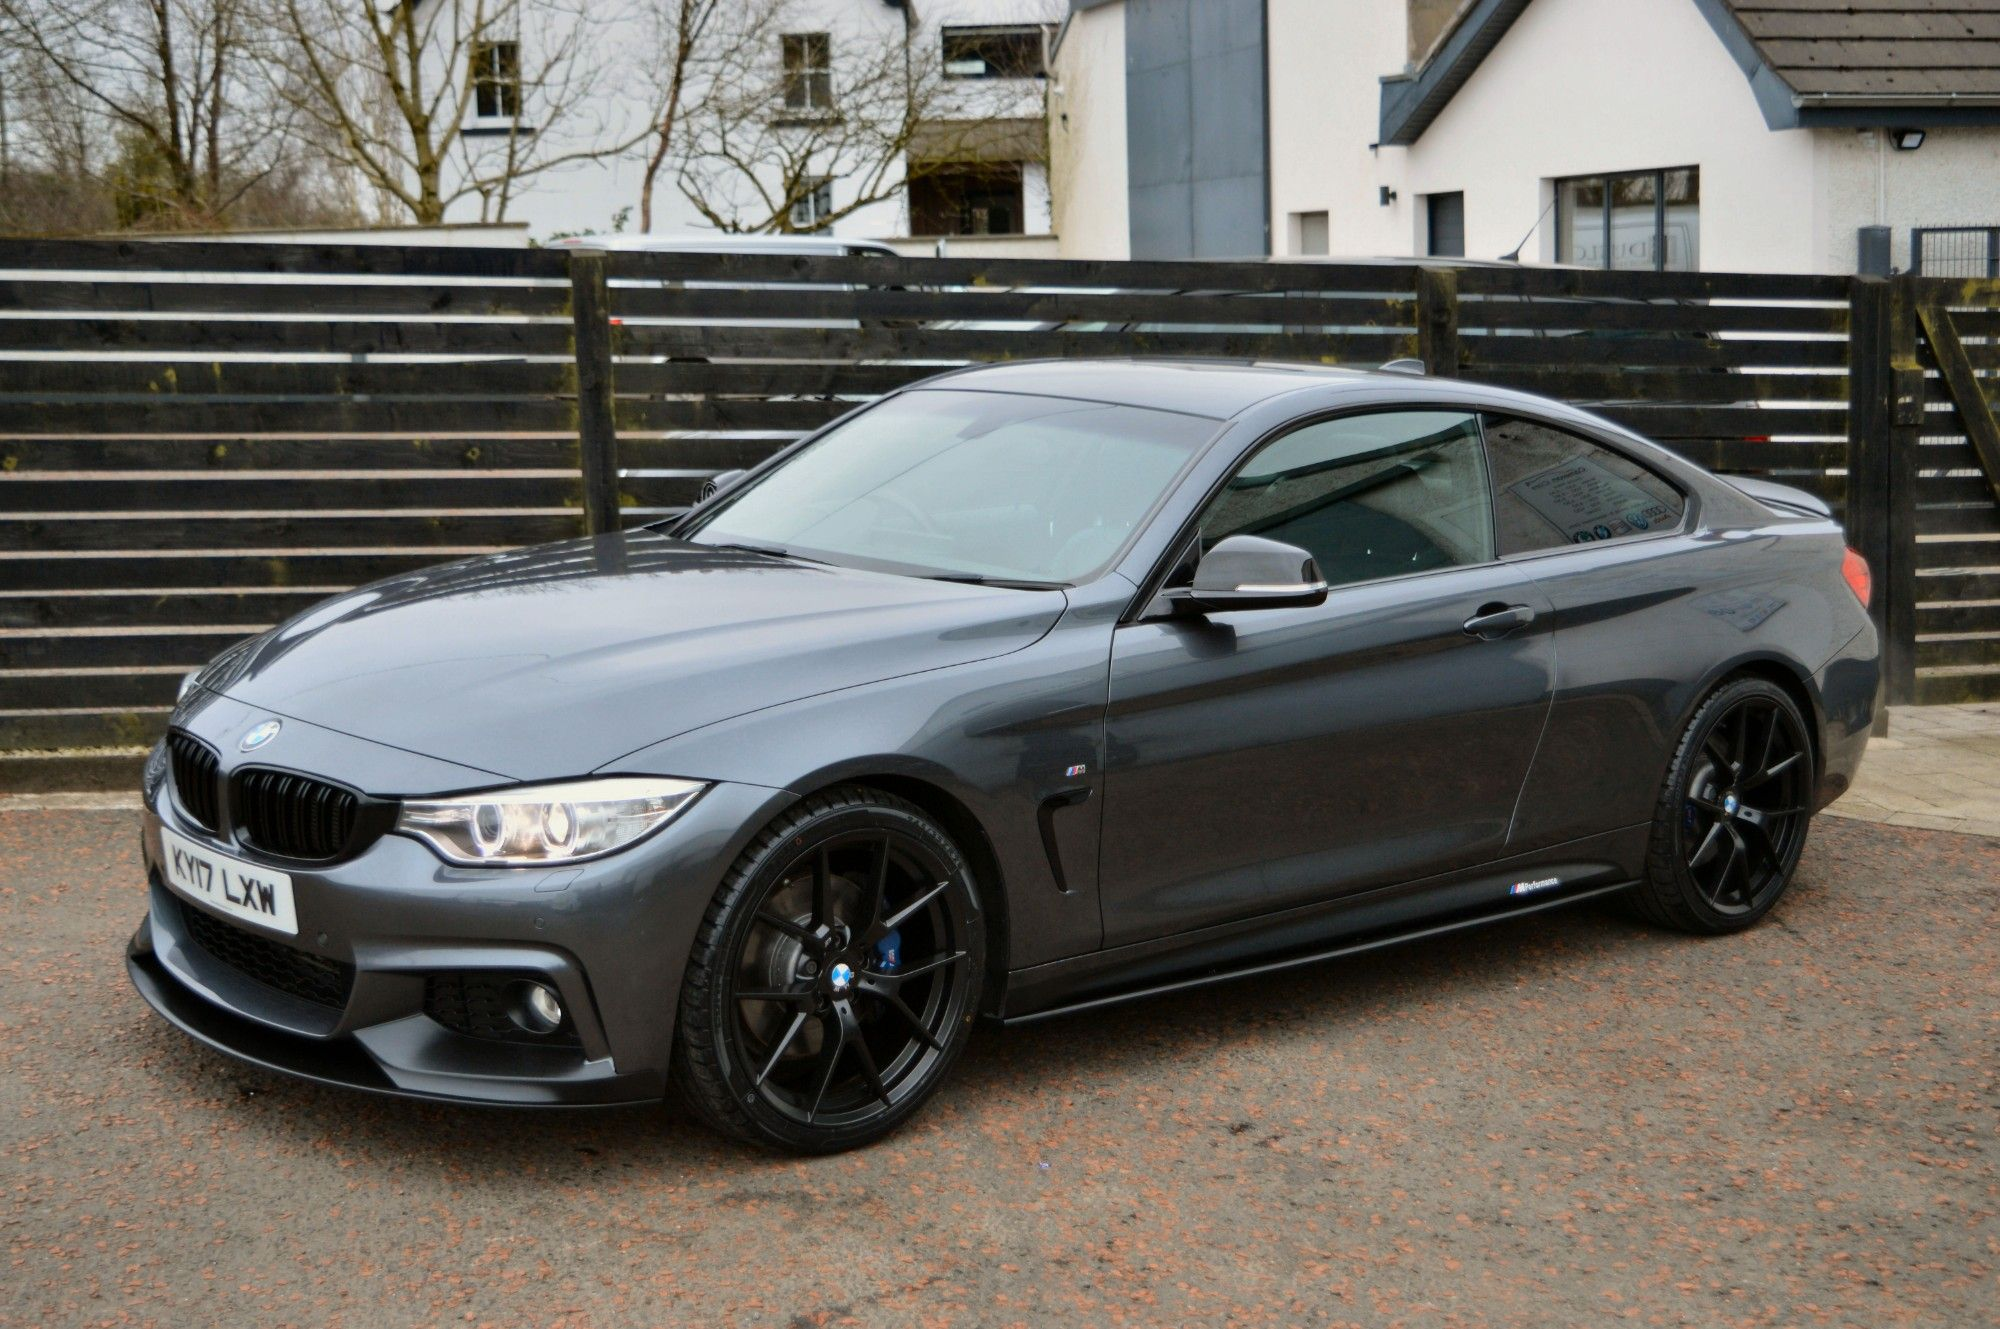 USED 2017 17 BMW 4 SERIES 2.0 420D M SPORT 2d 188 BHP 6 MONTHS RAC WARRANTY FREE + 12 MONTHS ROAD SIDE RECOVERY!